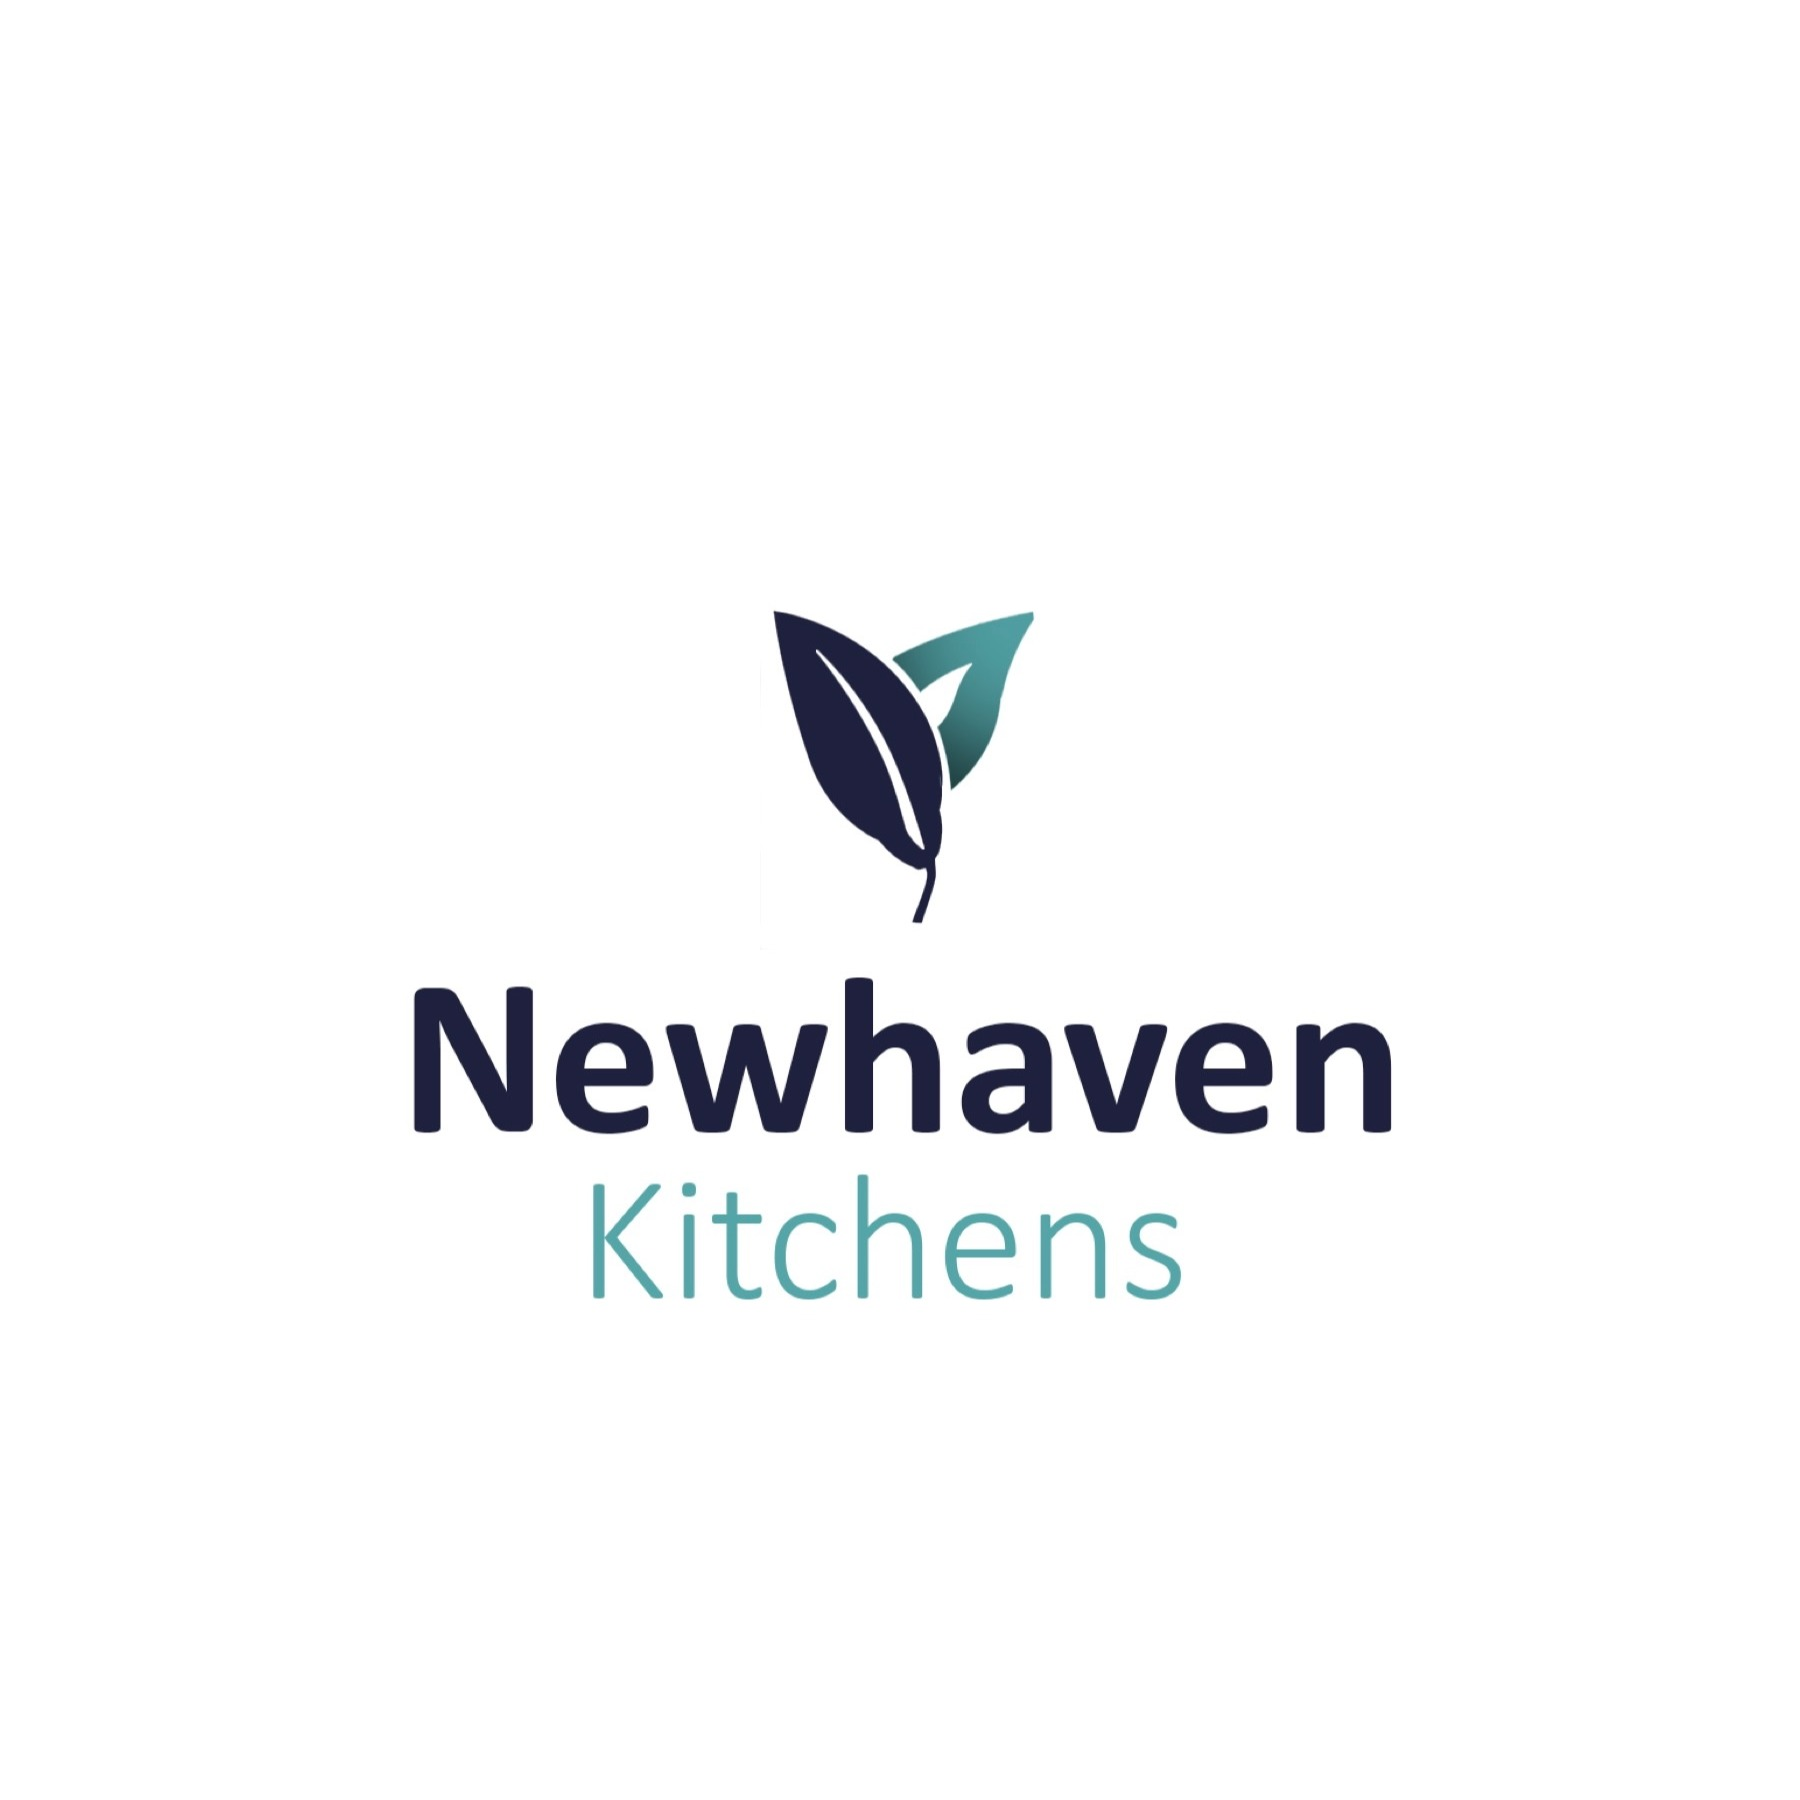 Newhaven Kitchens & Bedrooms